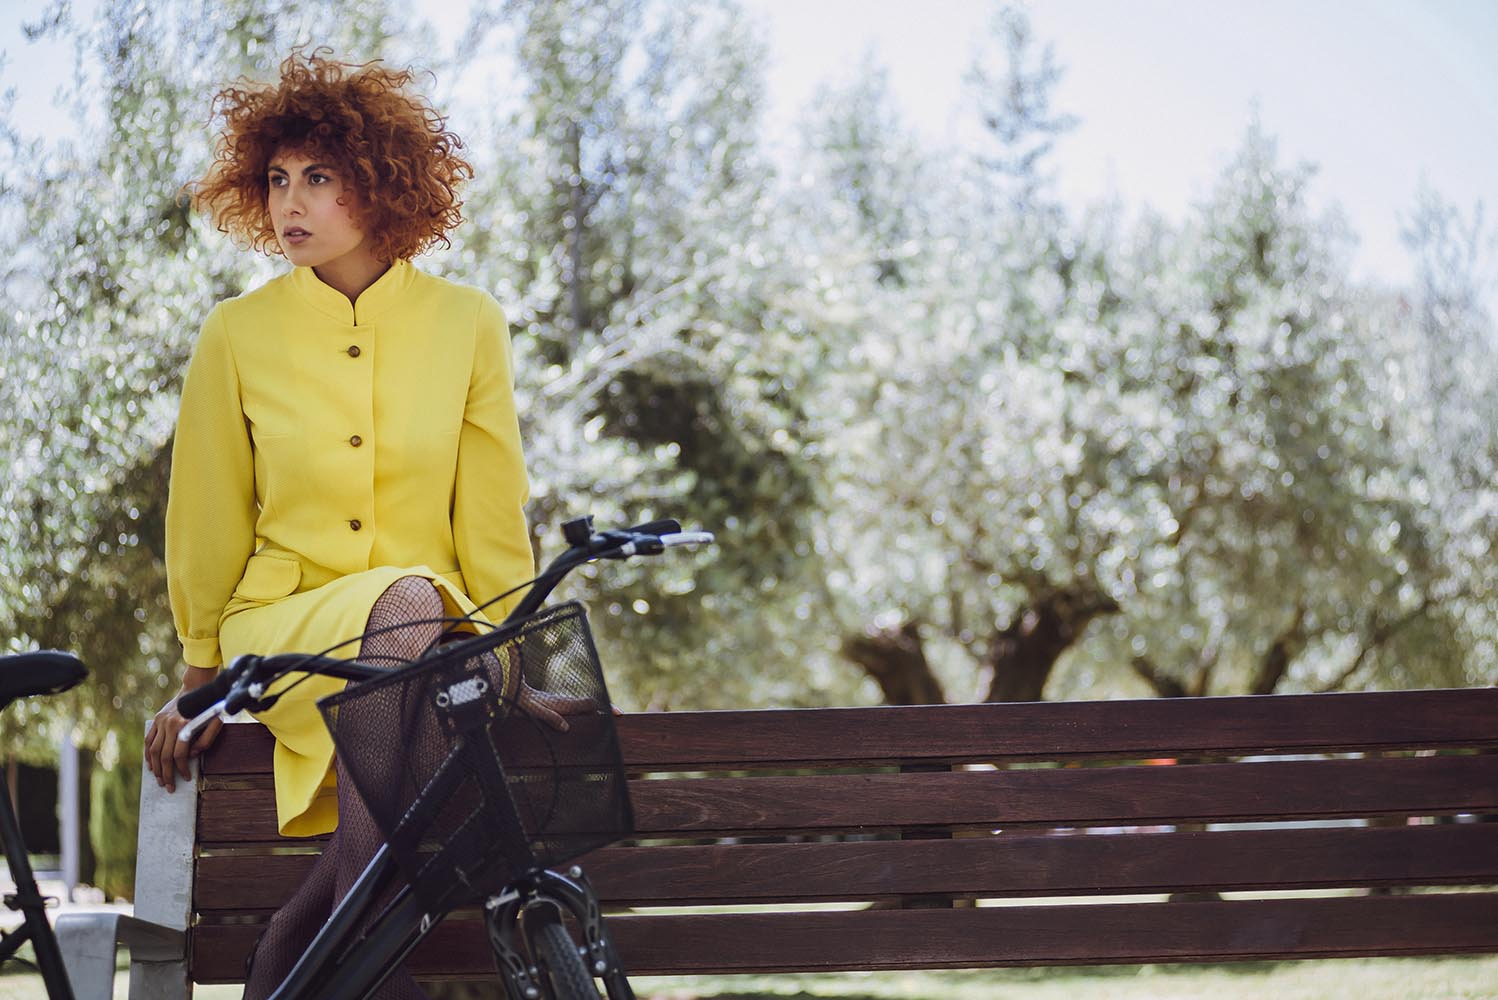 Redhaired beauty woman fashion girl on bicycle with chinesse umb